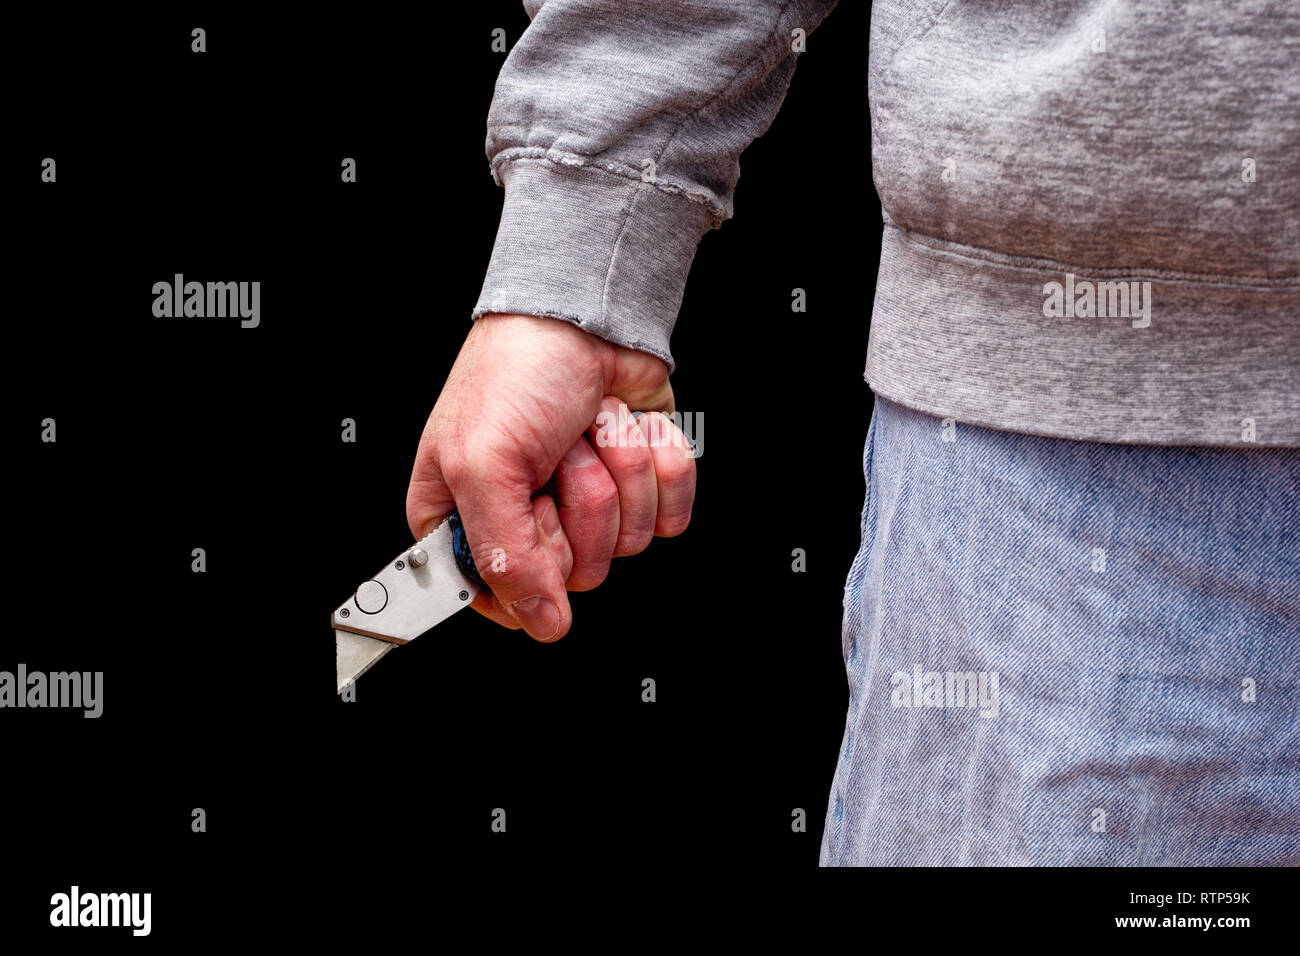 Image result for thief with a knife holding up man